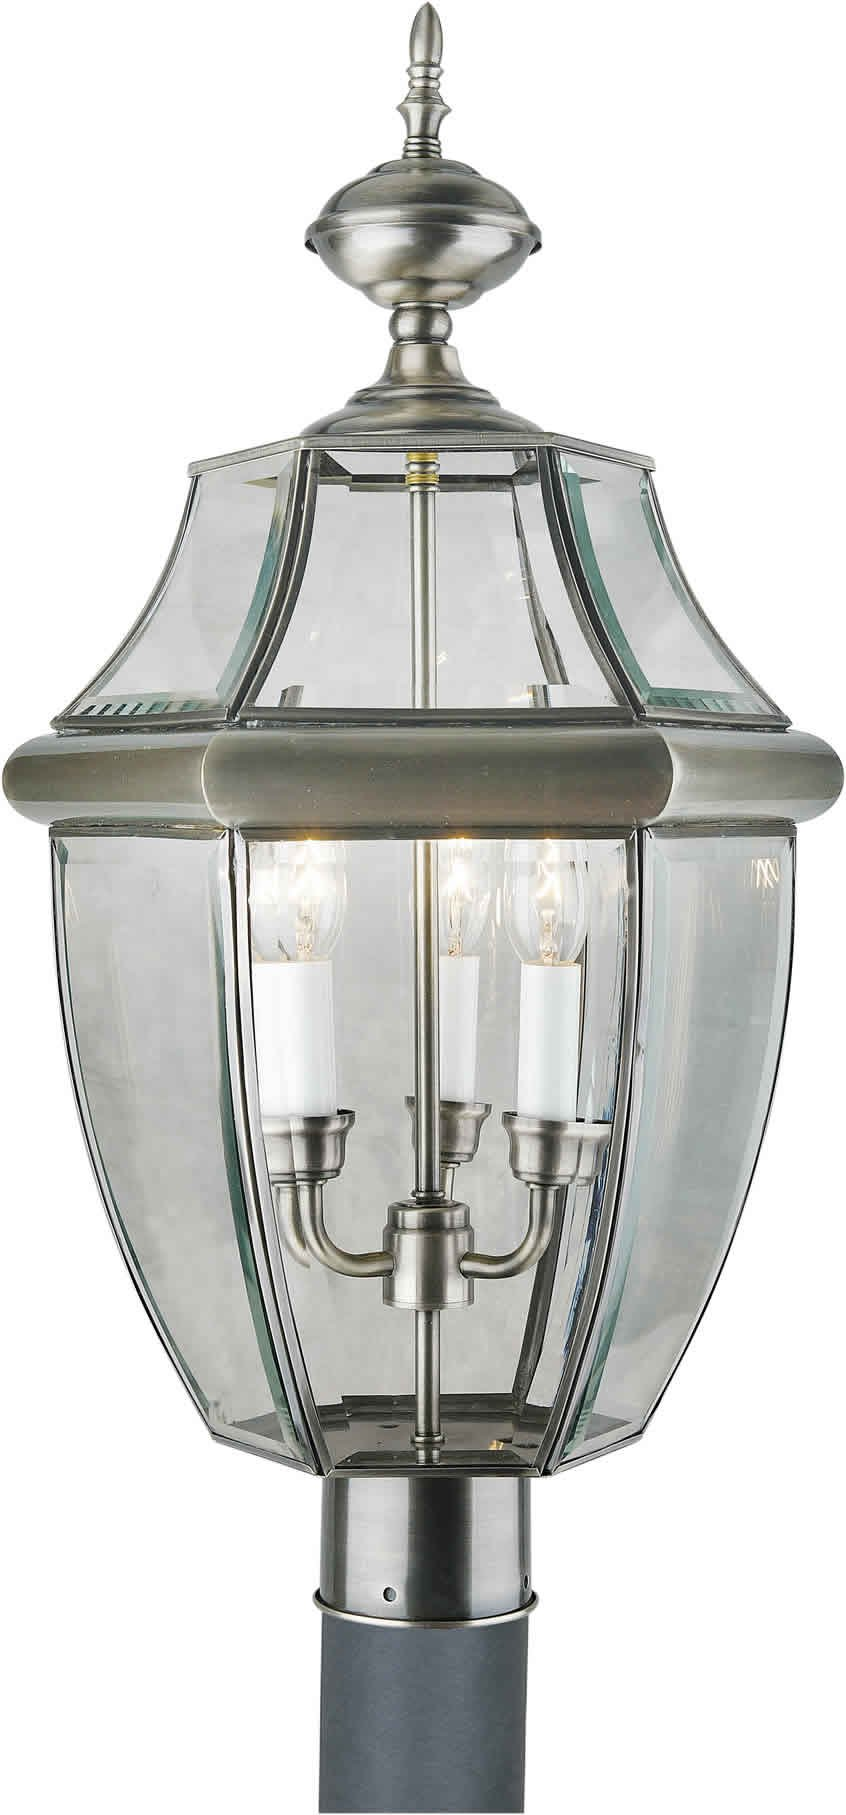 Forte Lighting 1604-03-34 Outdoor Post Fixture with Clear Beveled Glass Shades, Antique Pewter